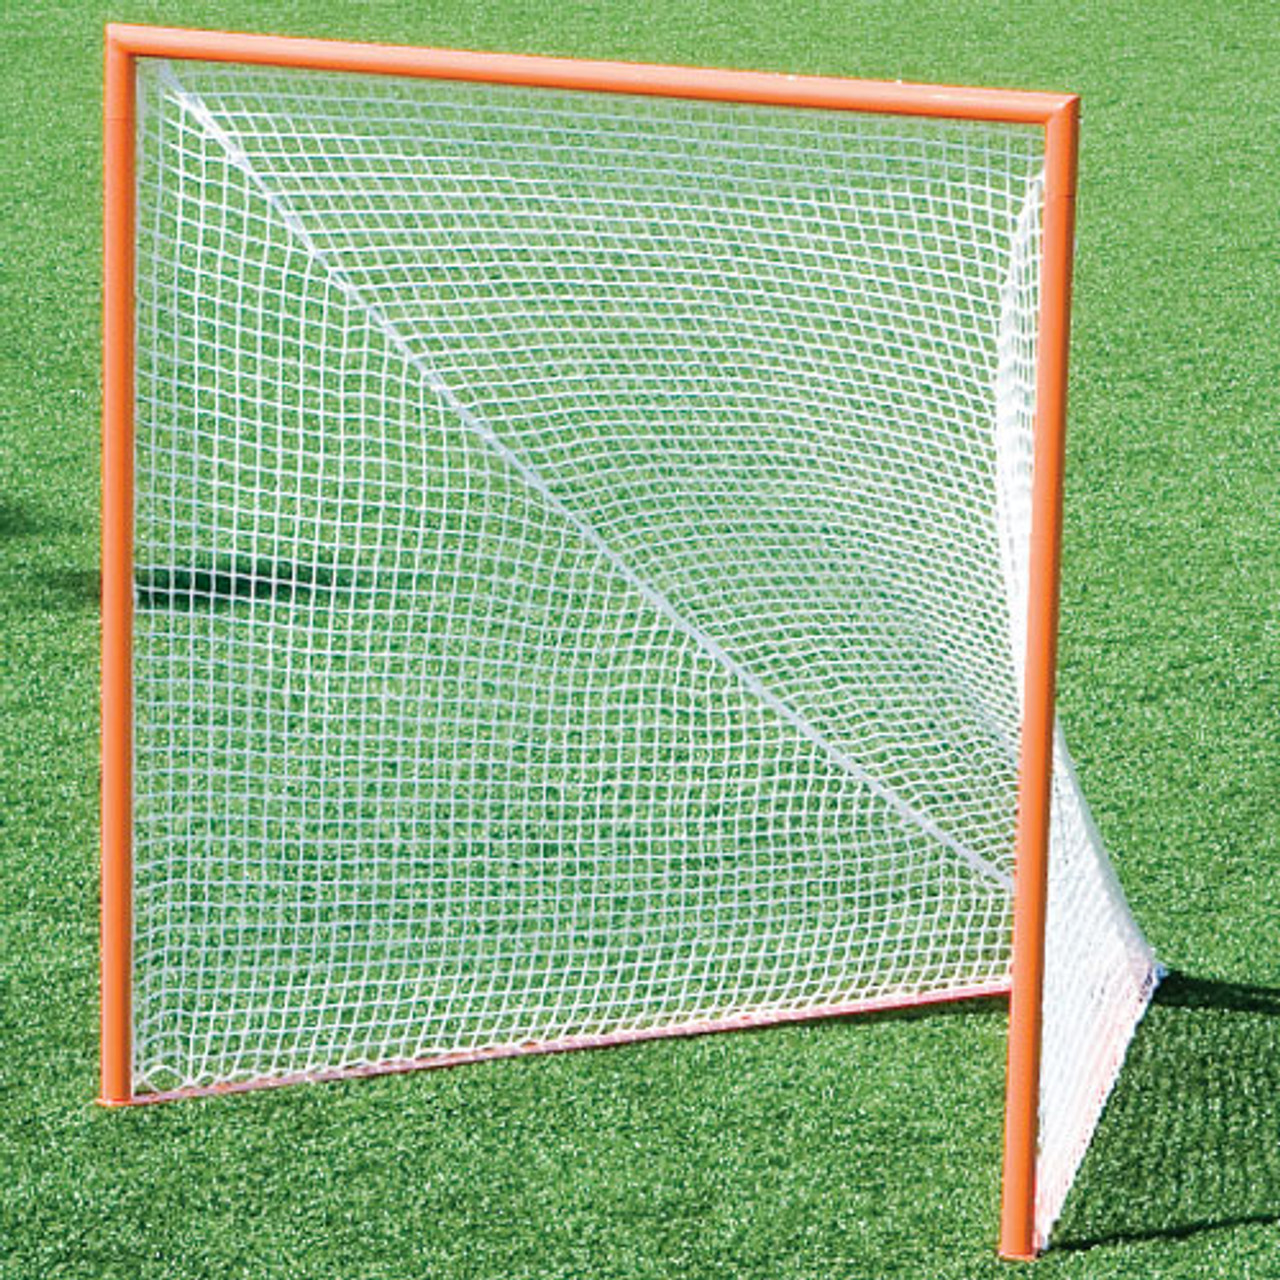 Official Lacrosse Goal and Net